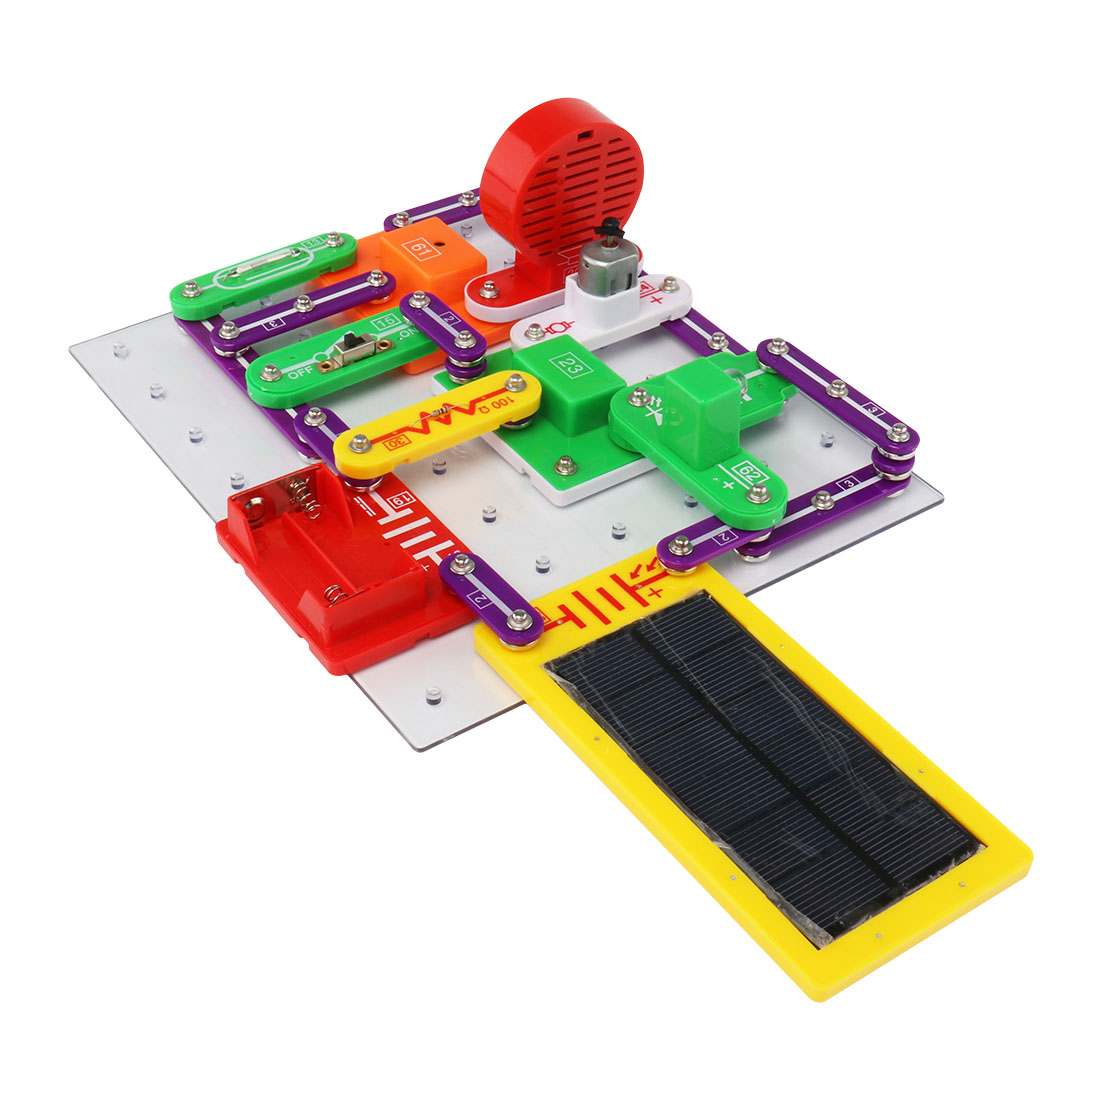 Upgraded Electronic Building Blocks Assembled Bricks Toy Circuits Educational Science DIY Toy goodman troubleshooting &amp repairing electronic circuits 2ed pr only